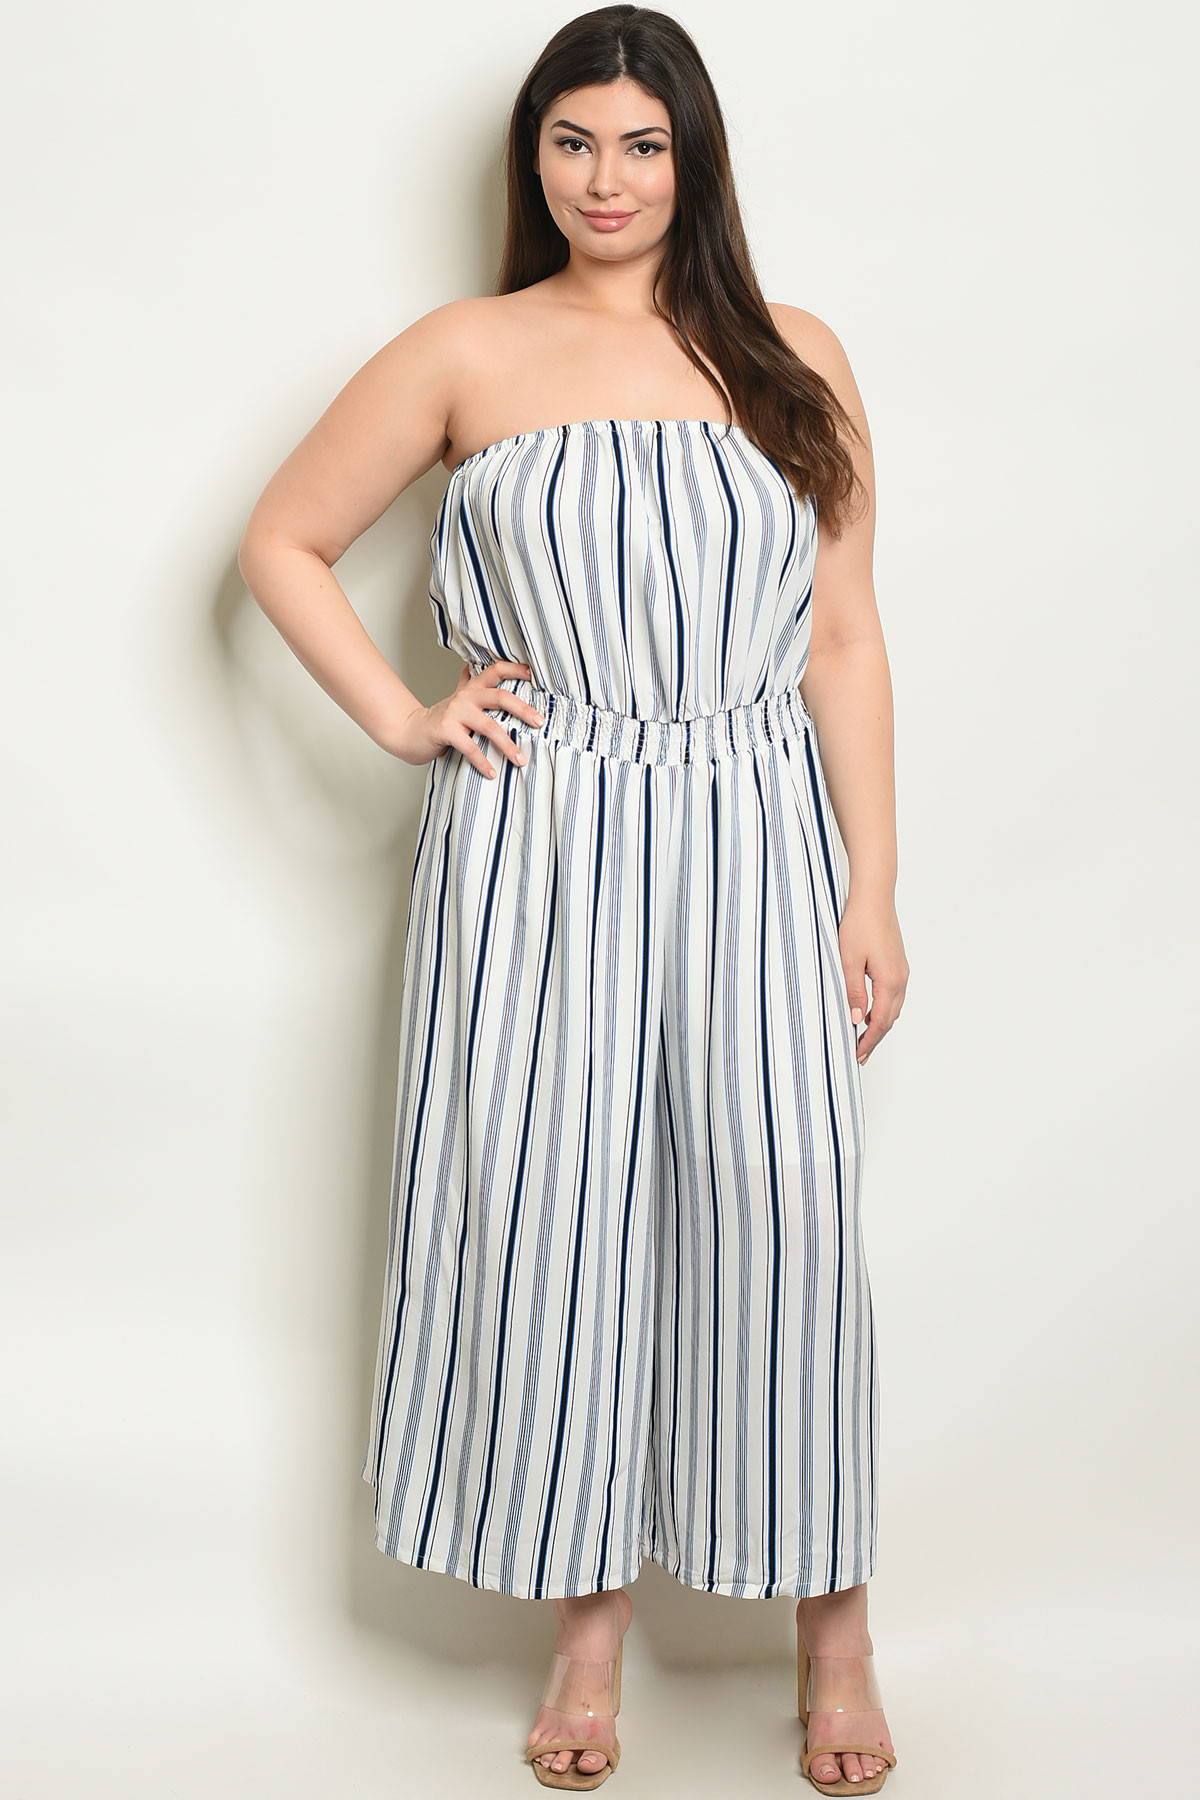 64939cdad1cb S3-5-3-J13797X OFF WHITE STRIPES PLUS SIZE JUMPSUIT 1-3-2